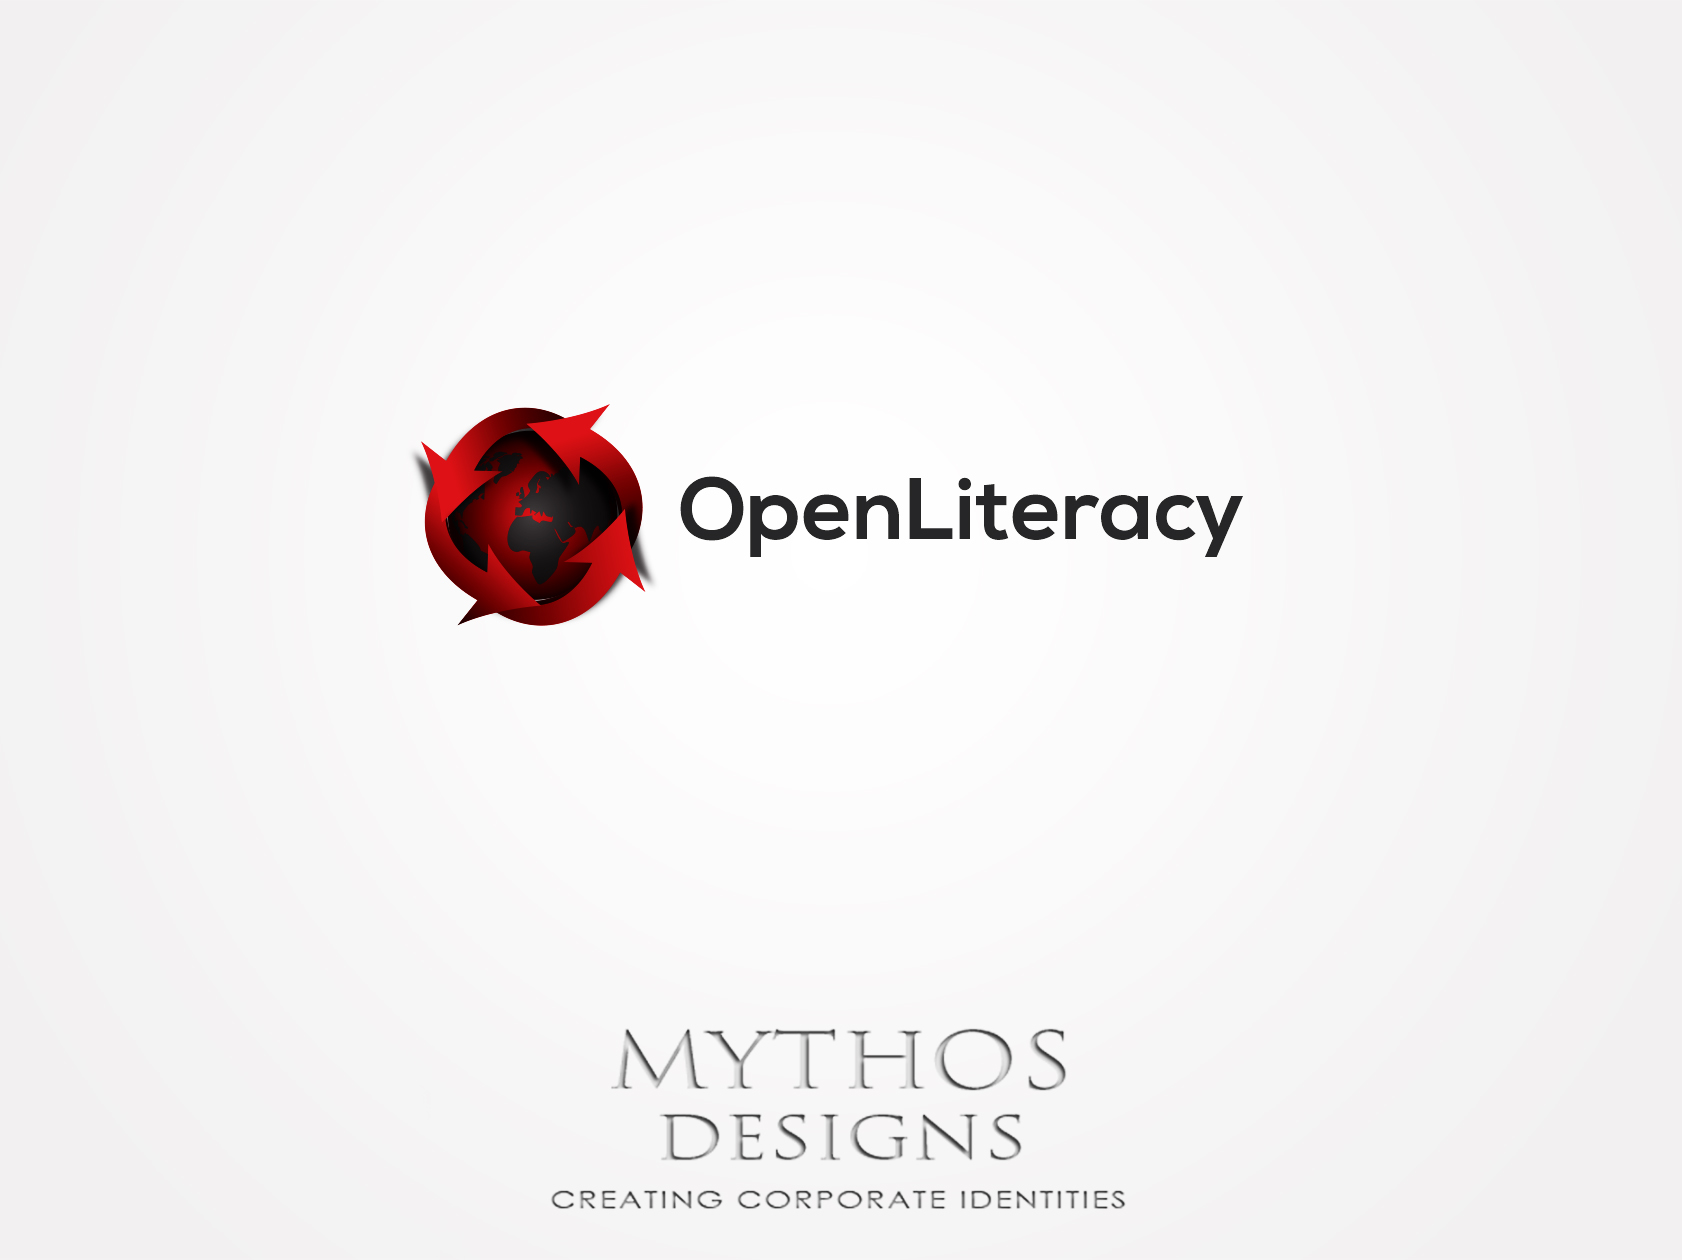 Logo Design by Mythos Designs - Entry No. 69 in the Logo Design Contest Inspiring Logo Design for OpenLiteracy.